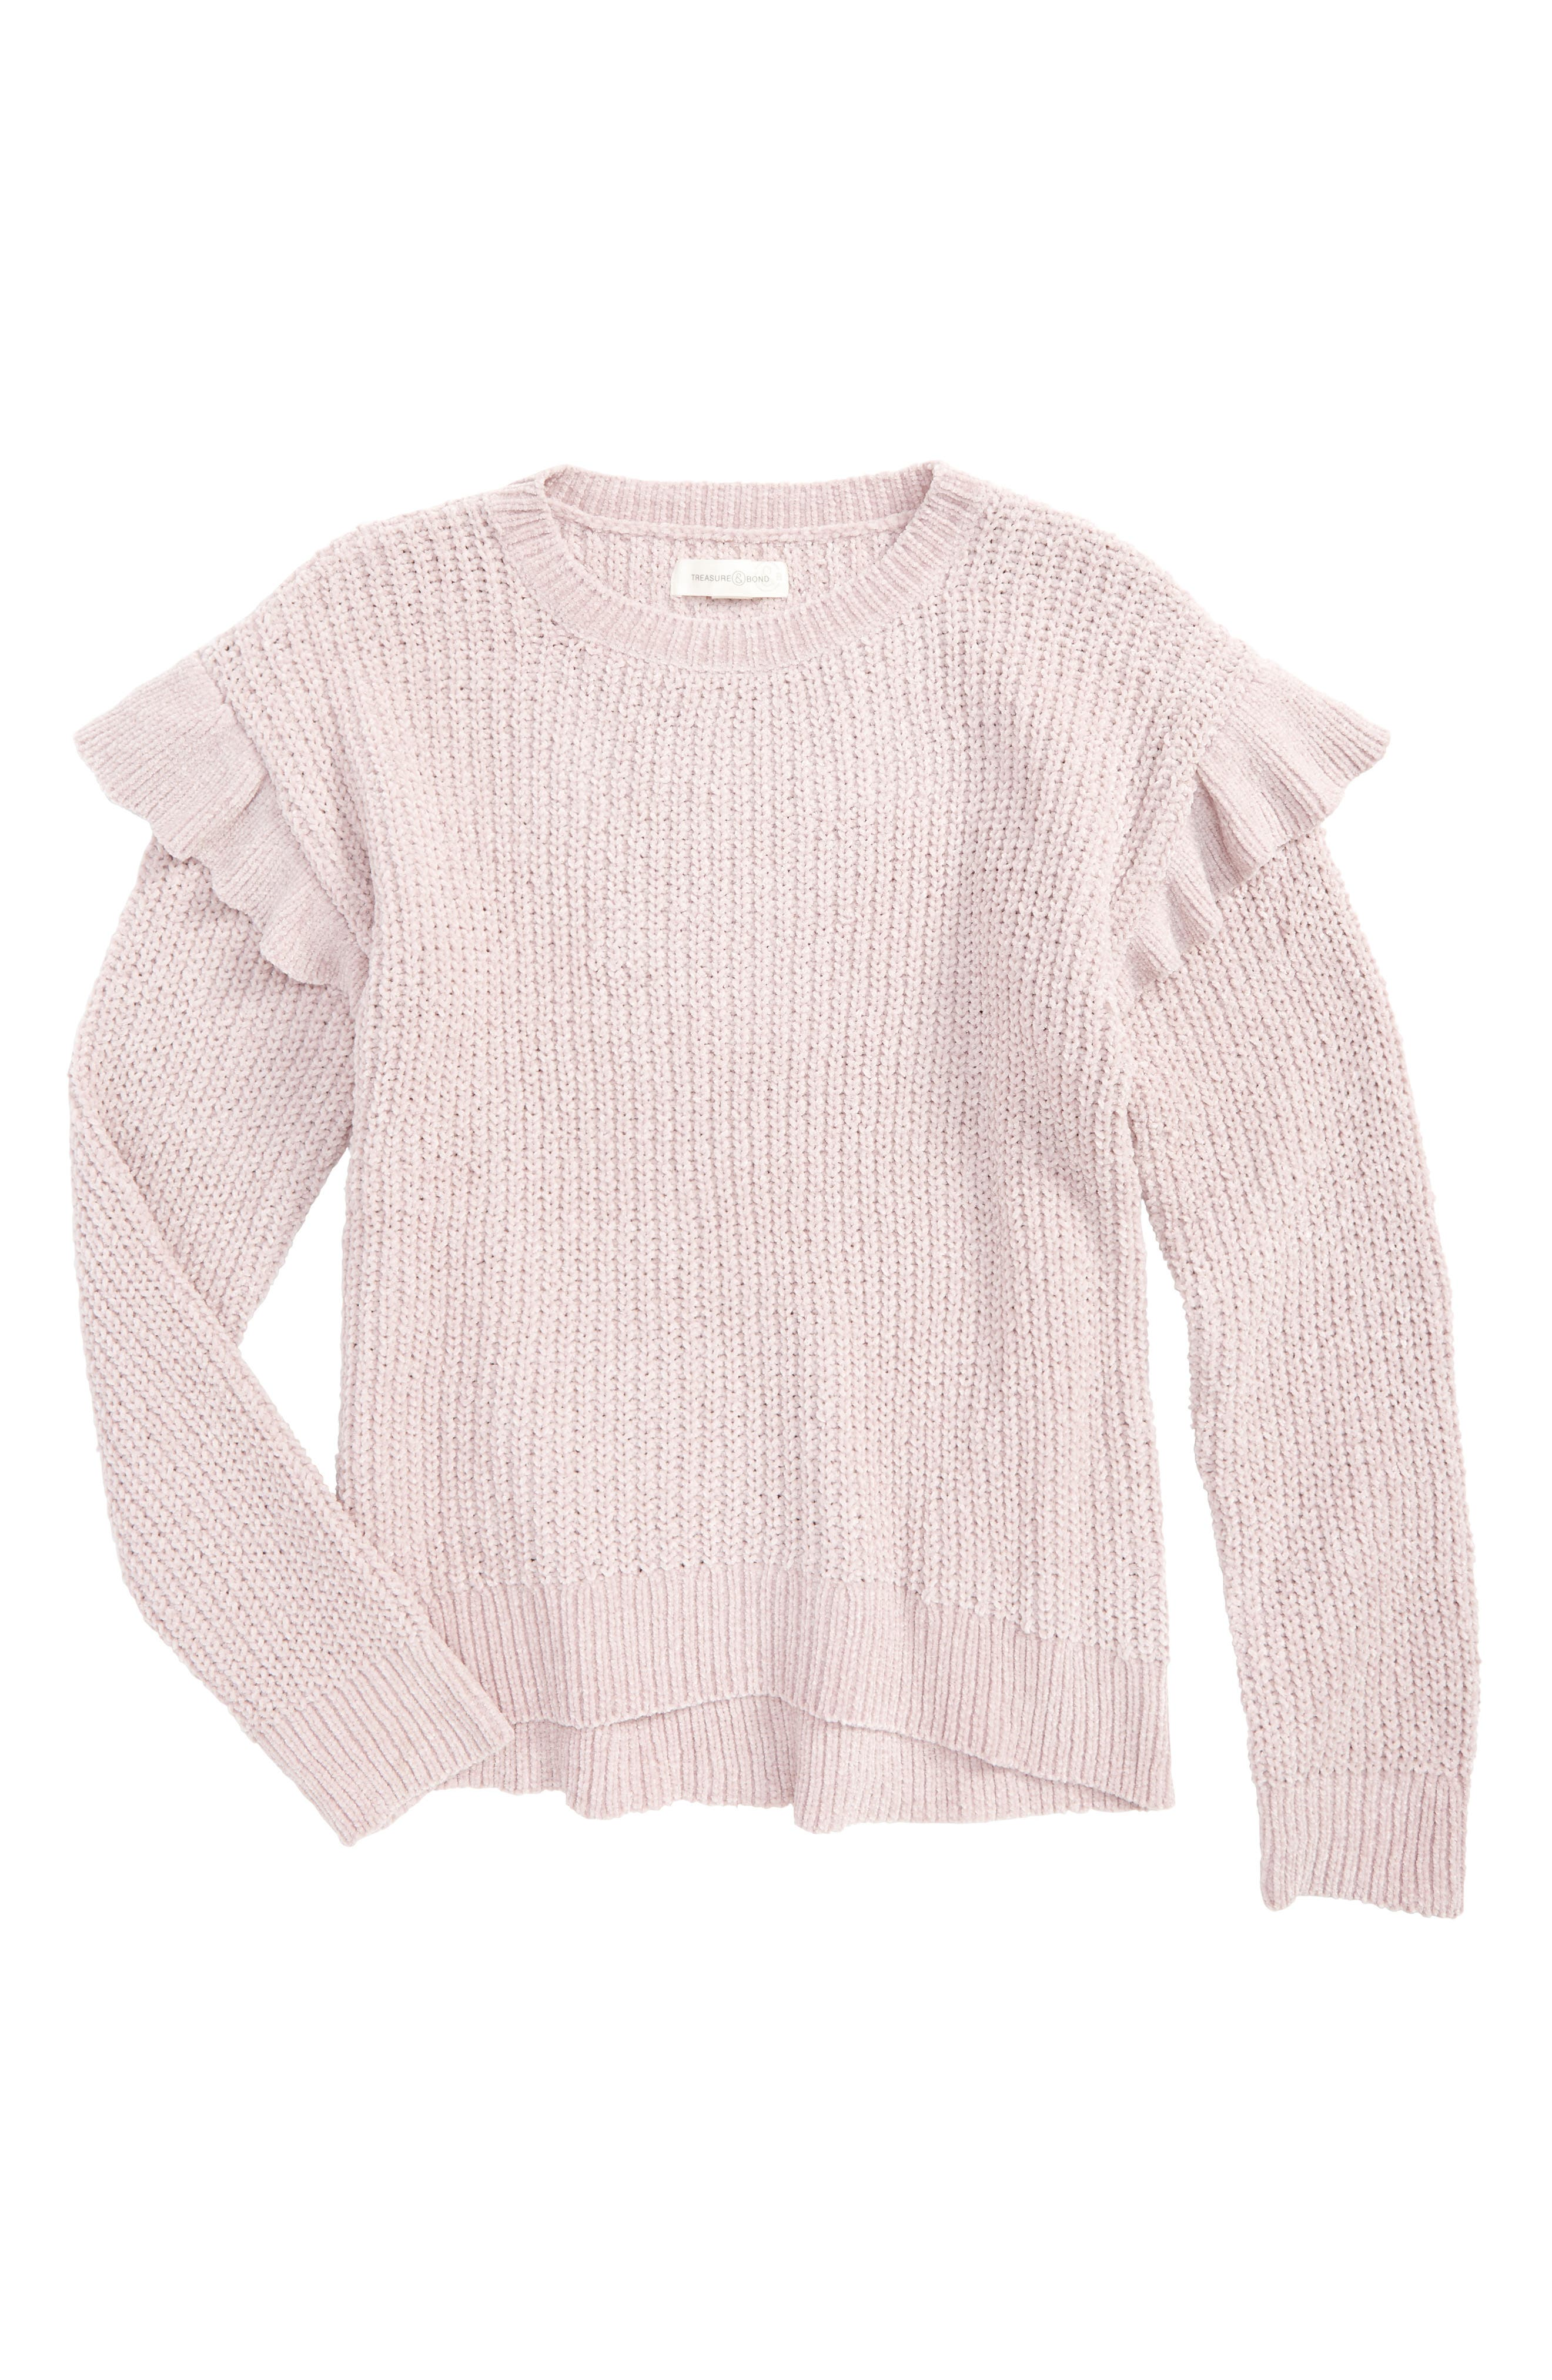 Ruffle Sweater,                         Main,                         color,